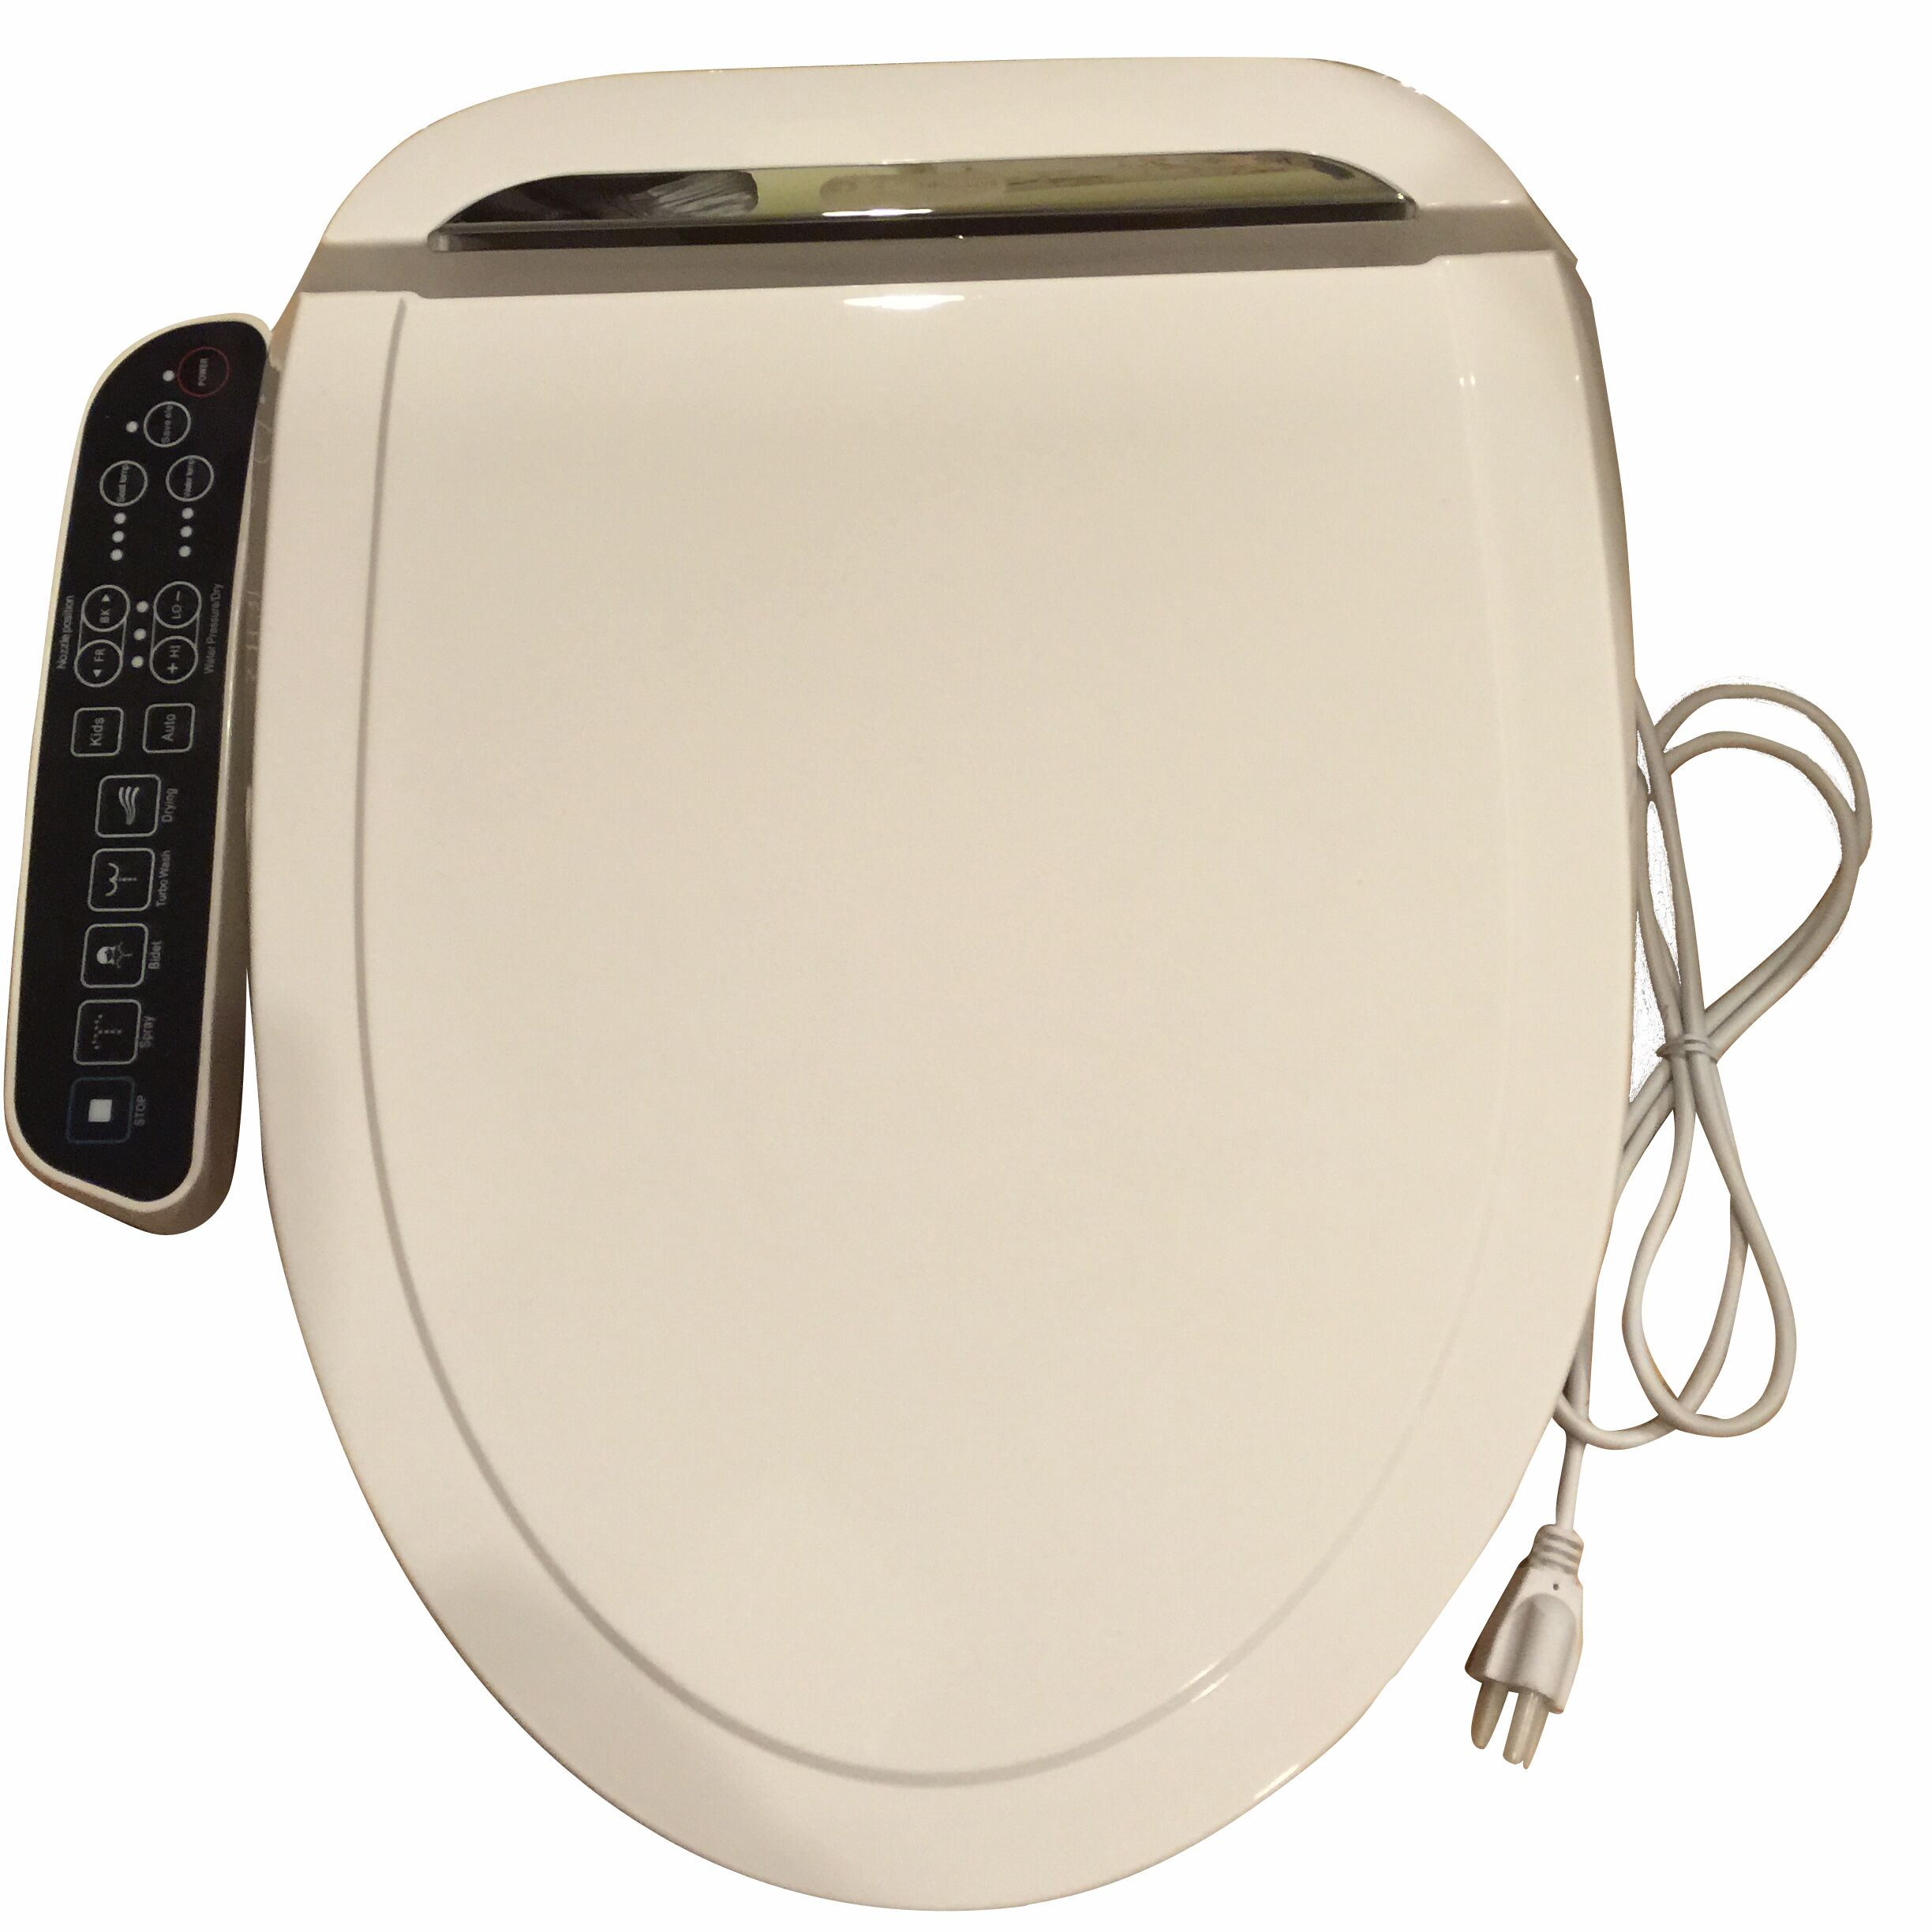 E 260a Elongated Electric Bidet Seat With Dryer And Deodorizer White Welcome To Bidet4me